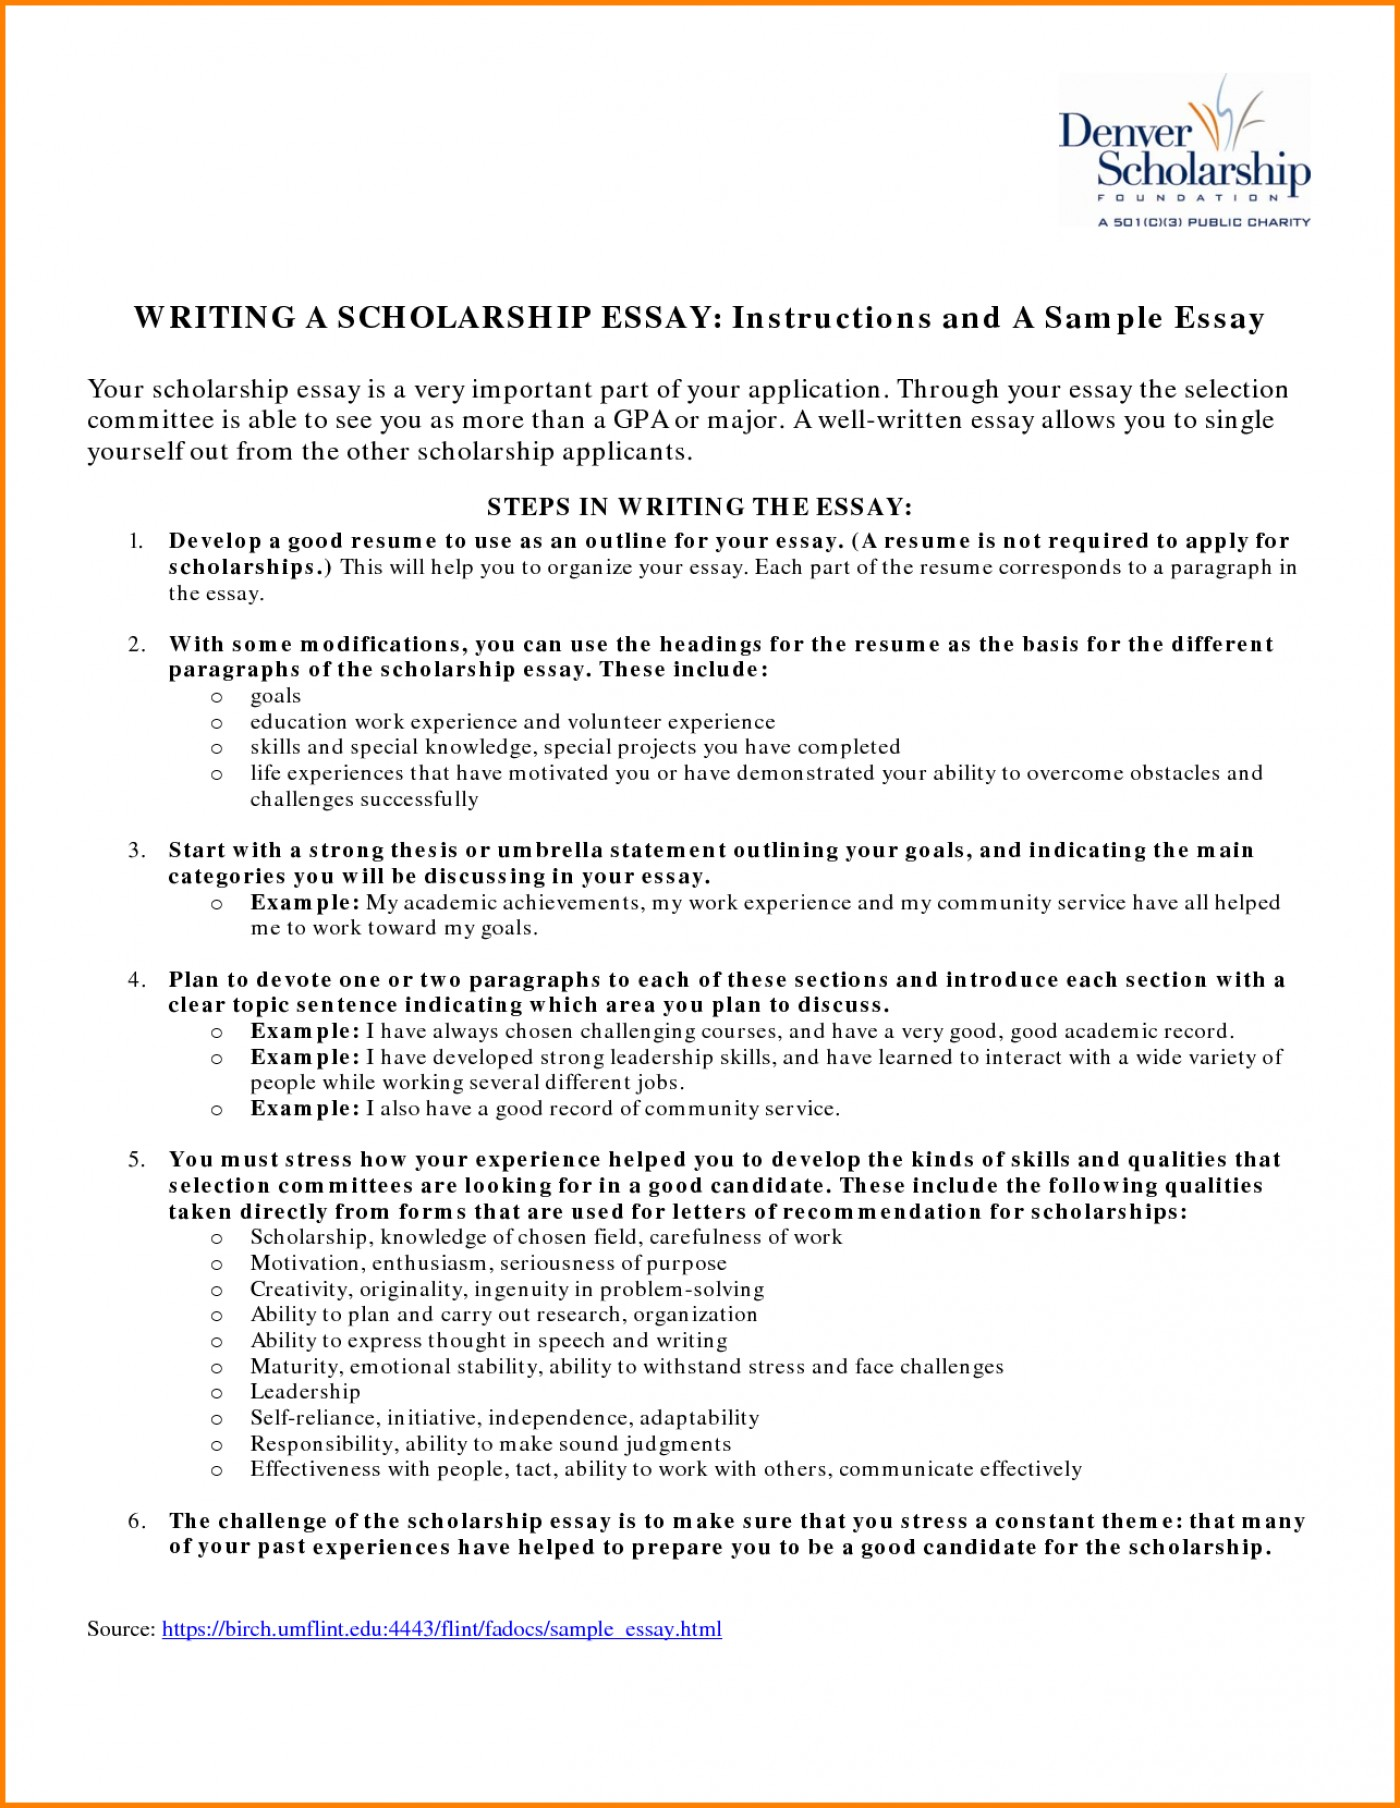 023 Inspiration Resume Examples For Scholarships With Nursing Scholarship Application Essay Example Fair In Sampl Nurse Staggering Mba Sample Tips College Ideas 1400